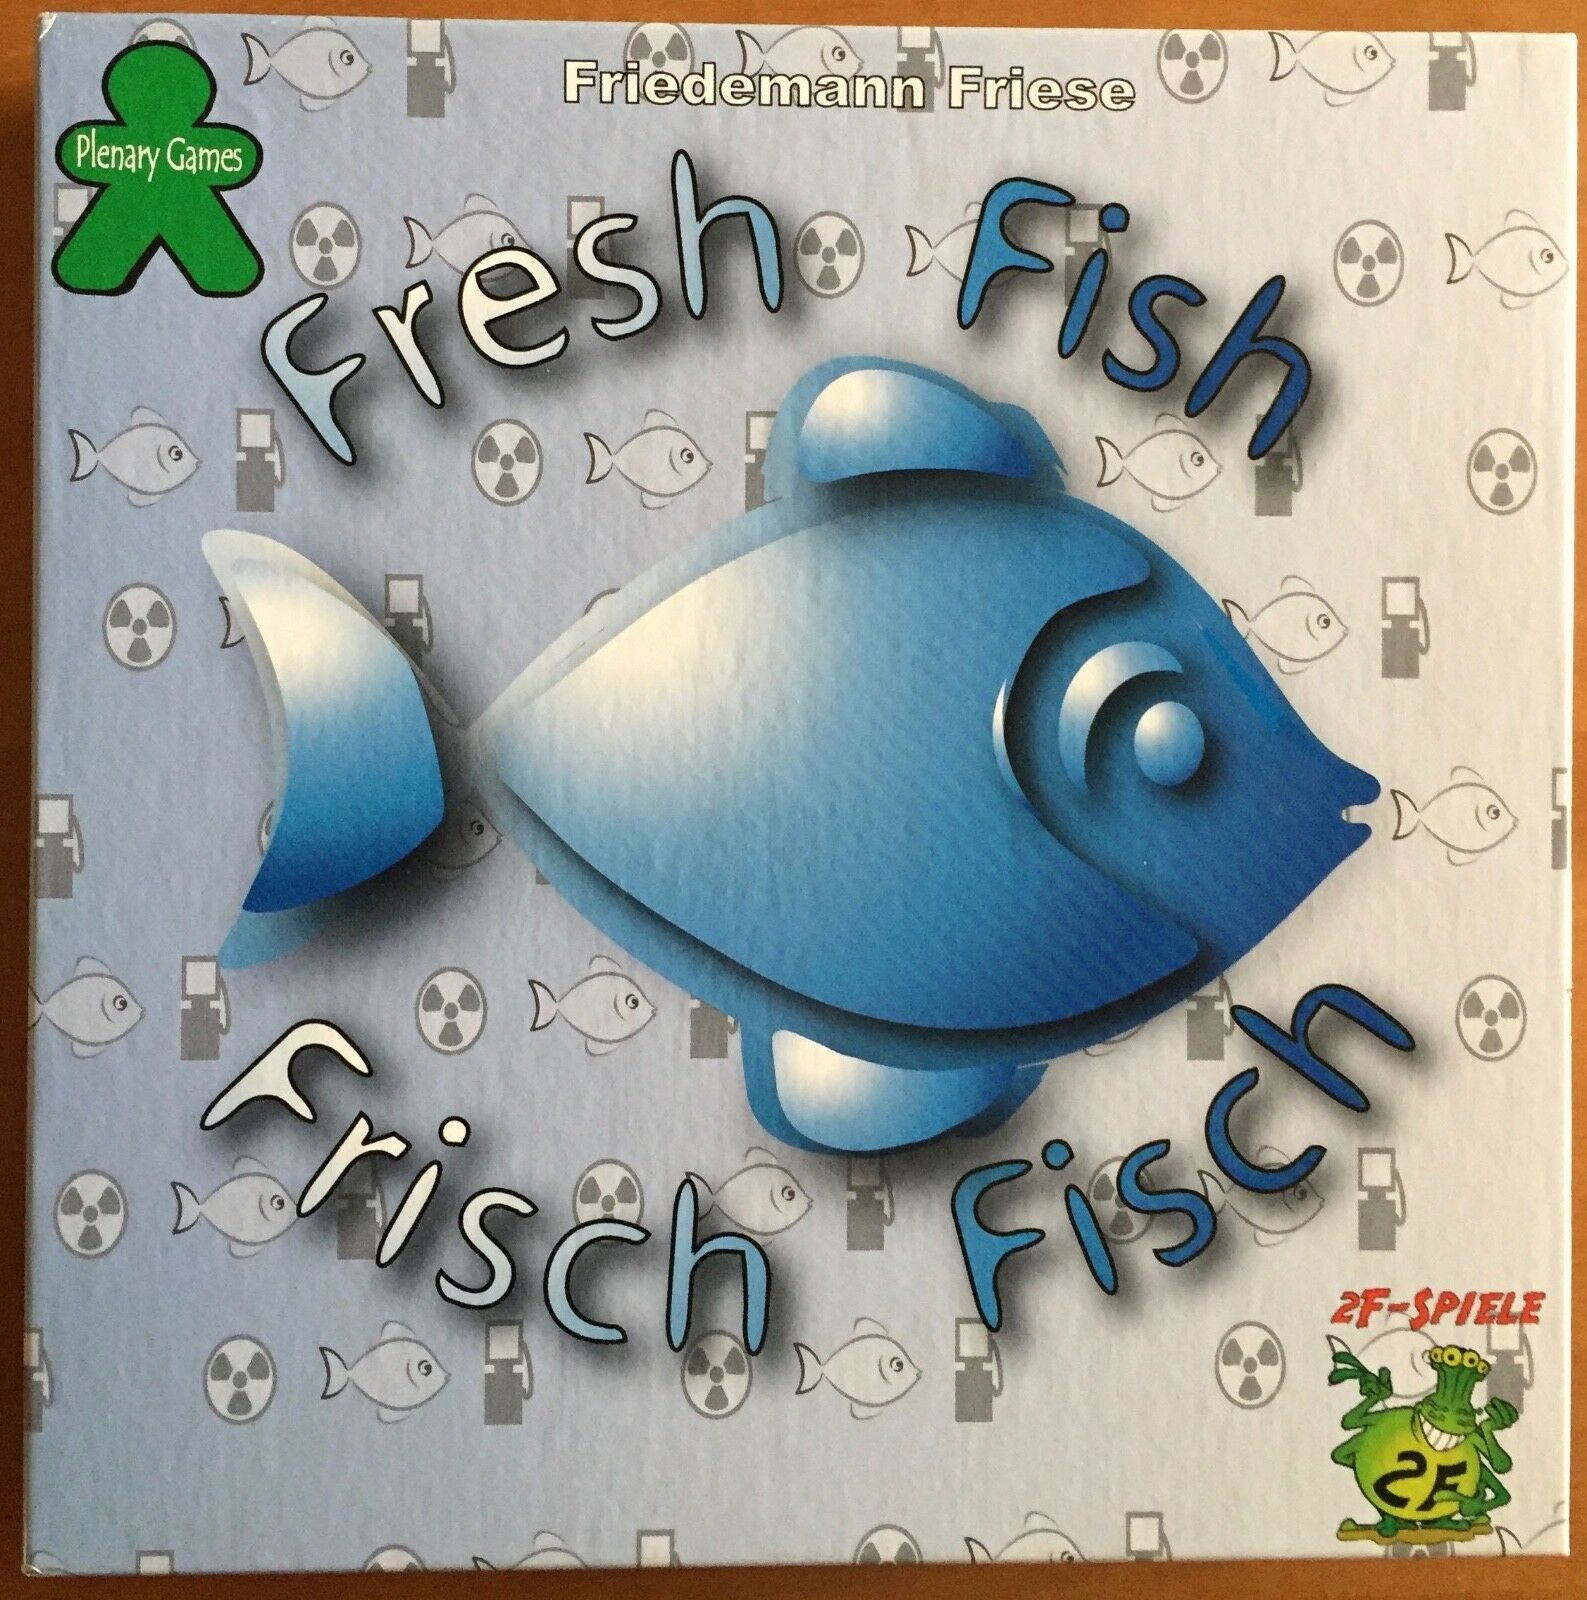 Fresh Fish - 2F-Spiele 1997 - PUNCHED